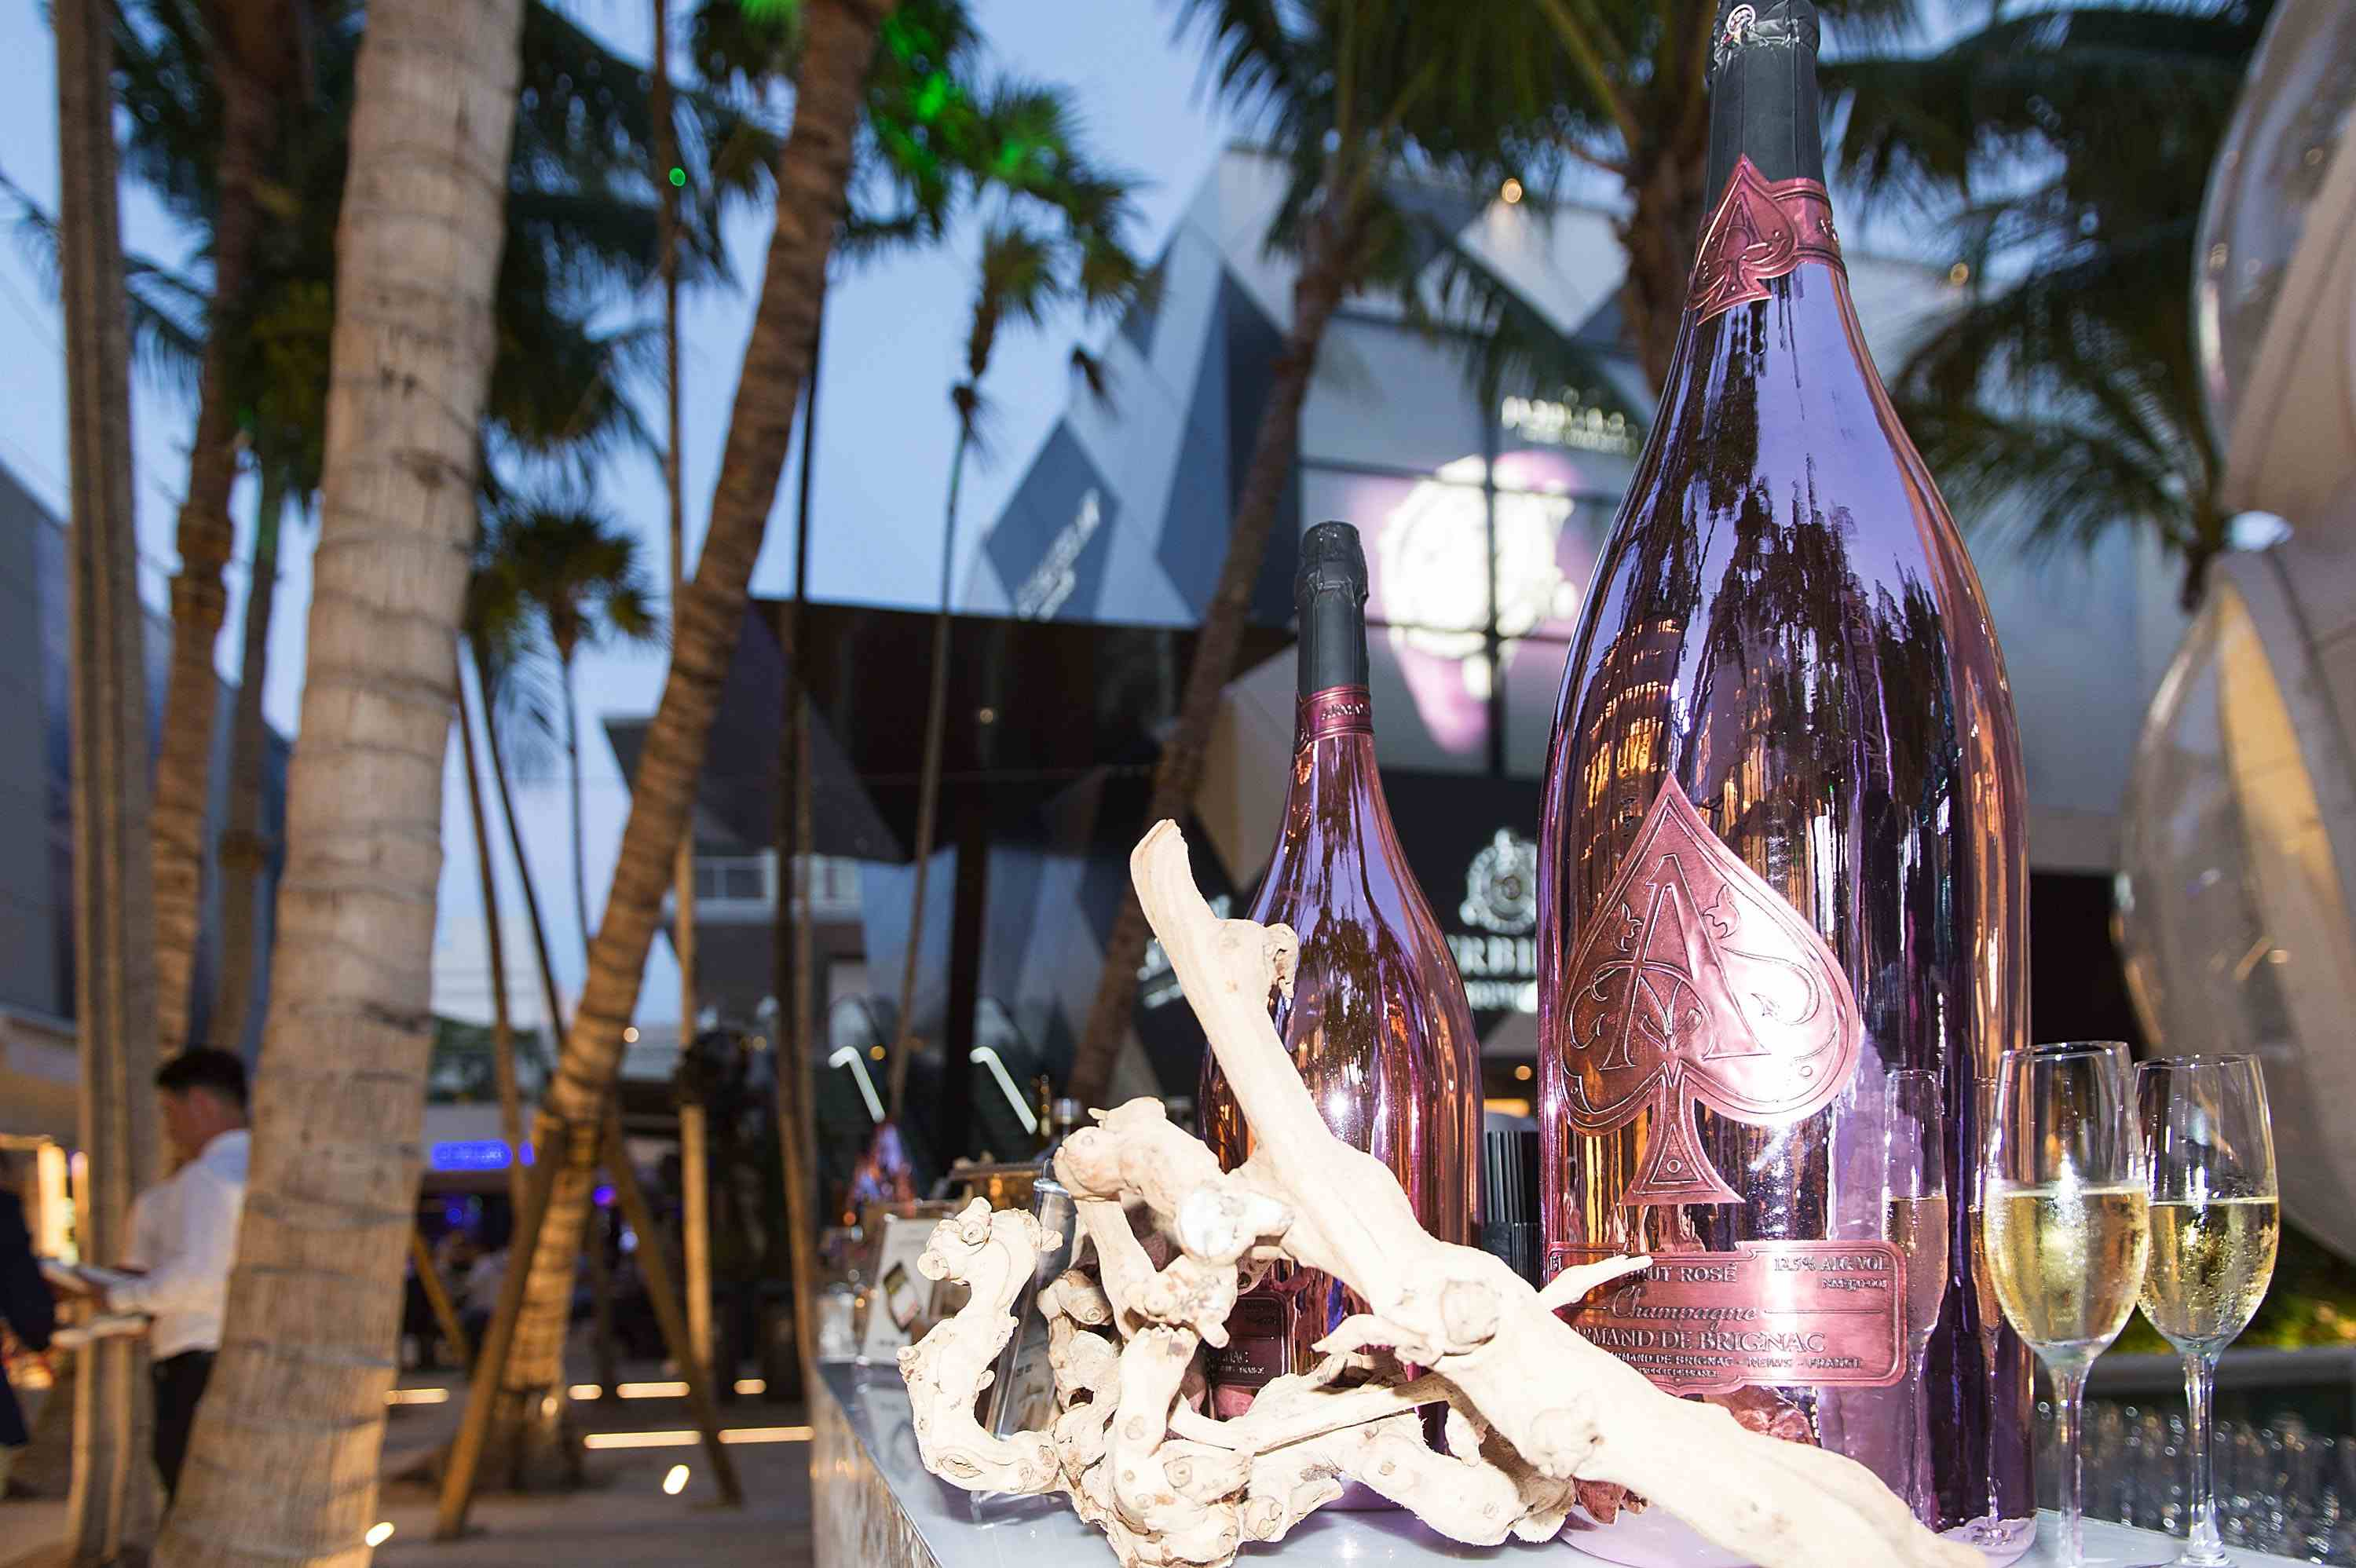 MIAMI, FL - MAY 16: Armand de Brignac champagne bottle at Haute Living Miami's Annual Haute 100 Dinner Presented By Hublot And Prestige Imports at Miami Design District Palm Court on May 16, 2017 in Miami, Florida.